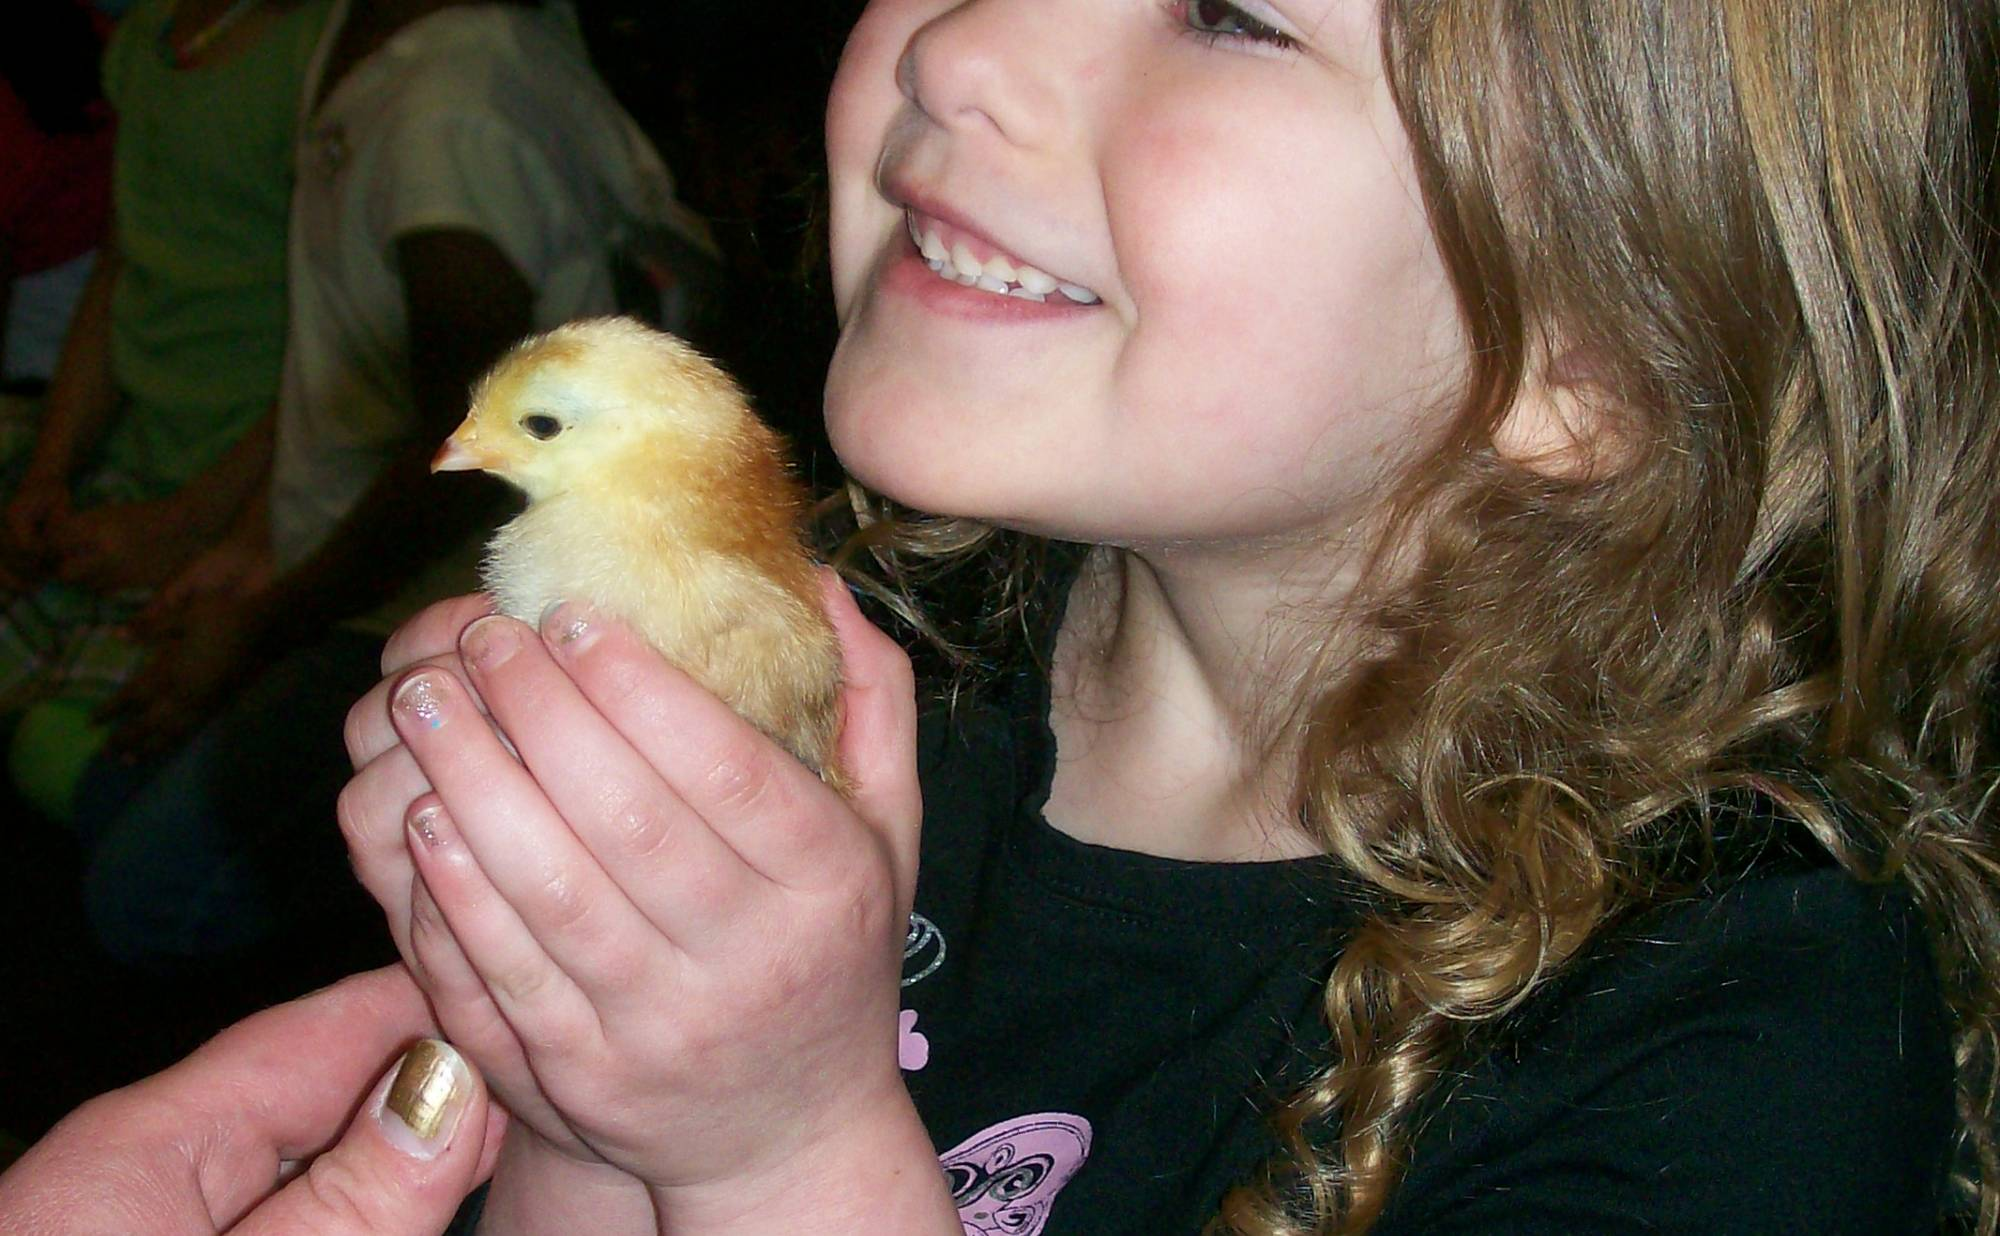 Young Anythinker Paige holds a baby chick